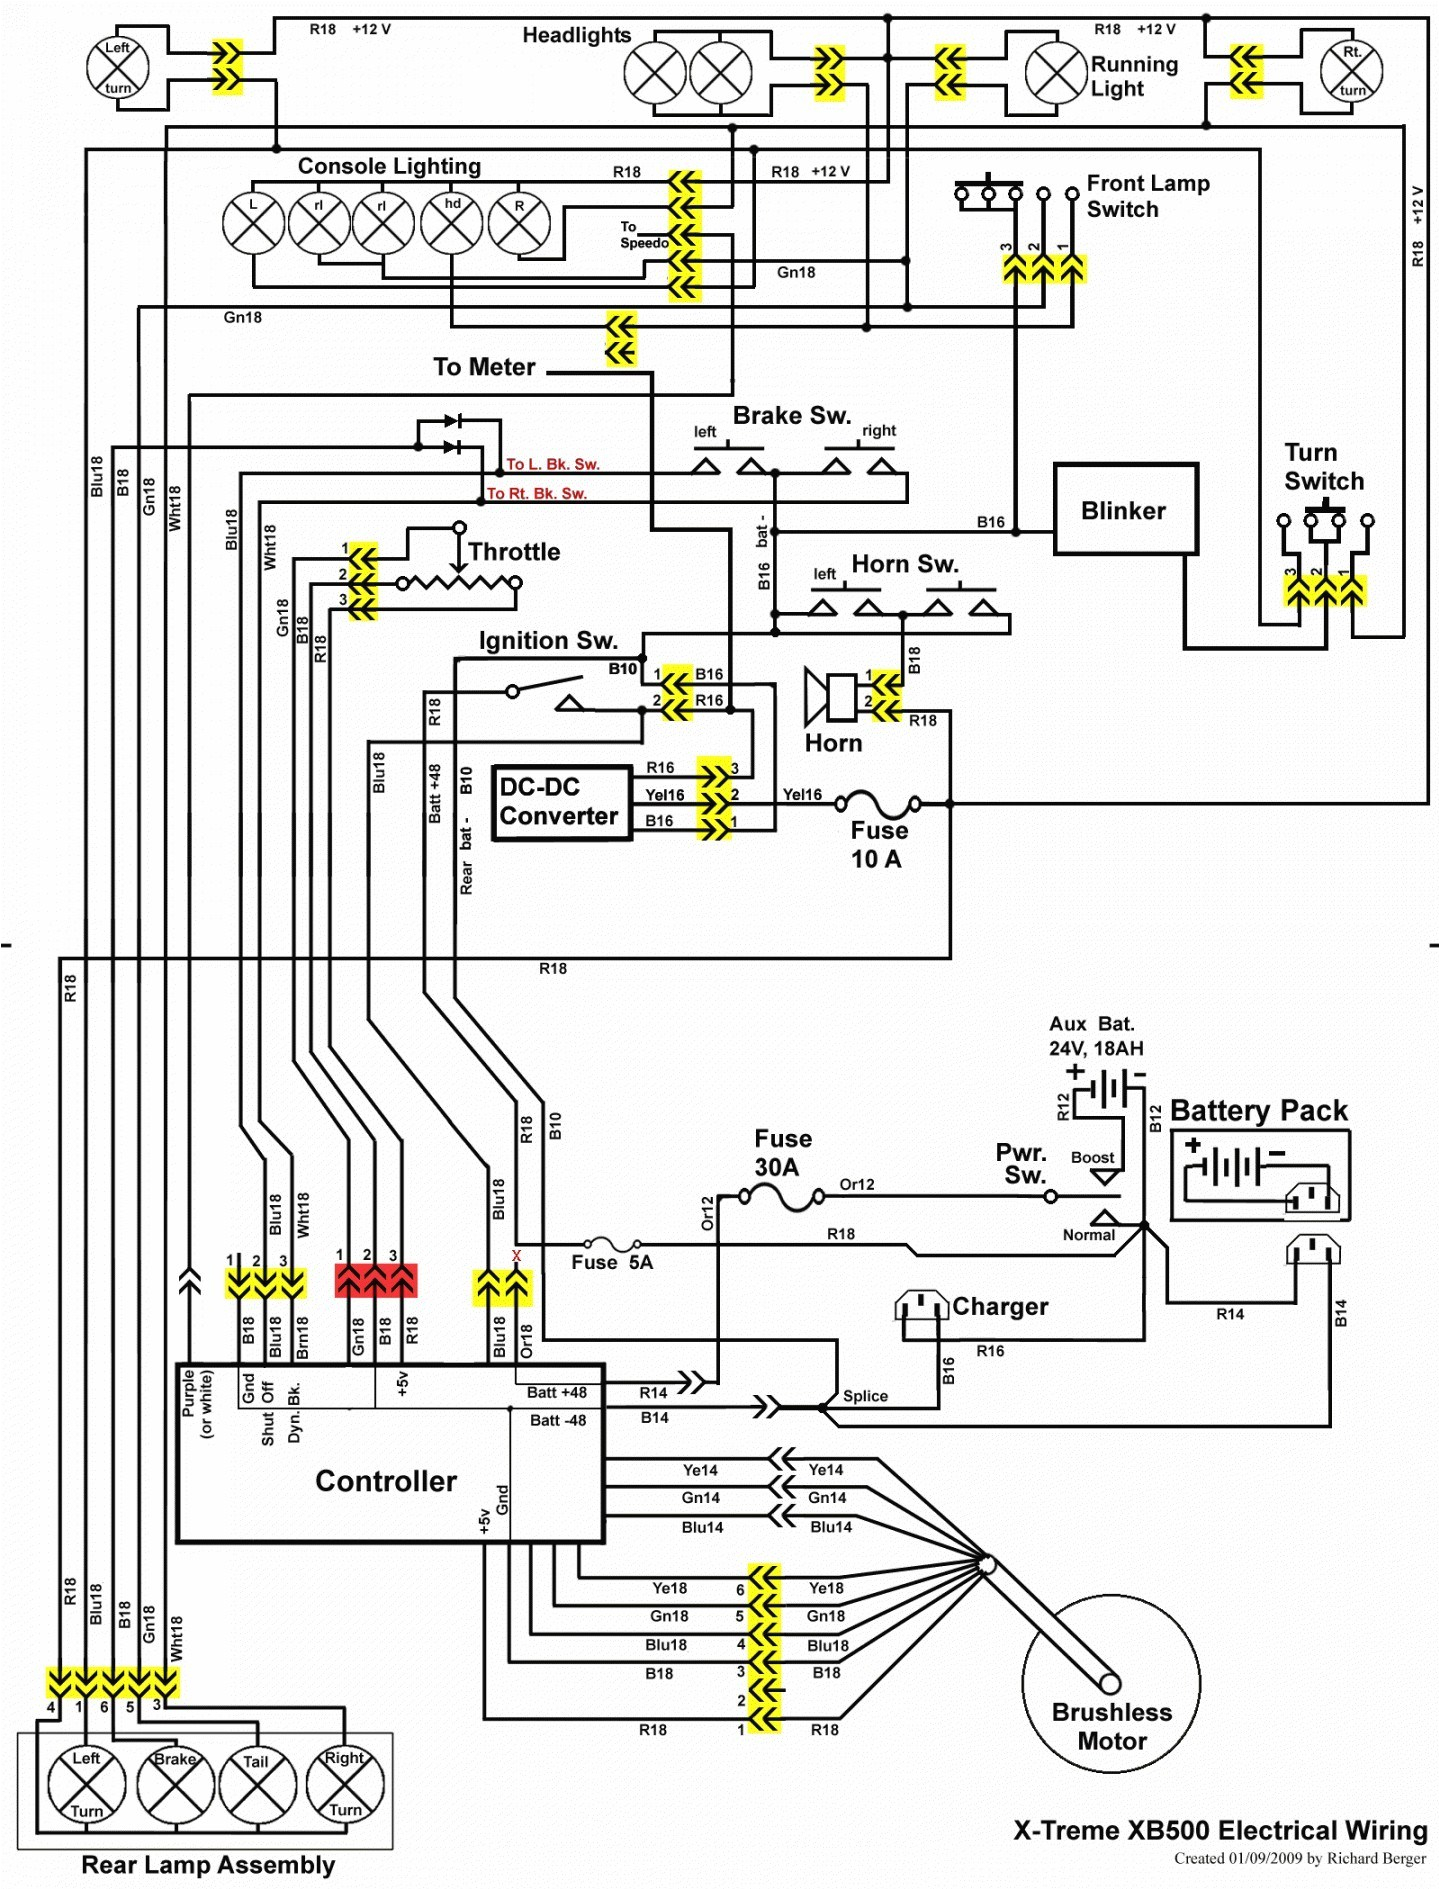 Tao Tao Gy6 Wiring Diagram - 2000 Lincoln Wiring Diagram for Wiring Diagram  SchematicsWiring Diagram Schematics